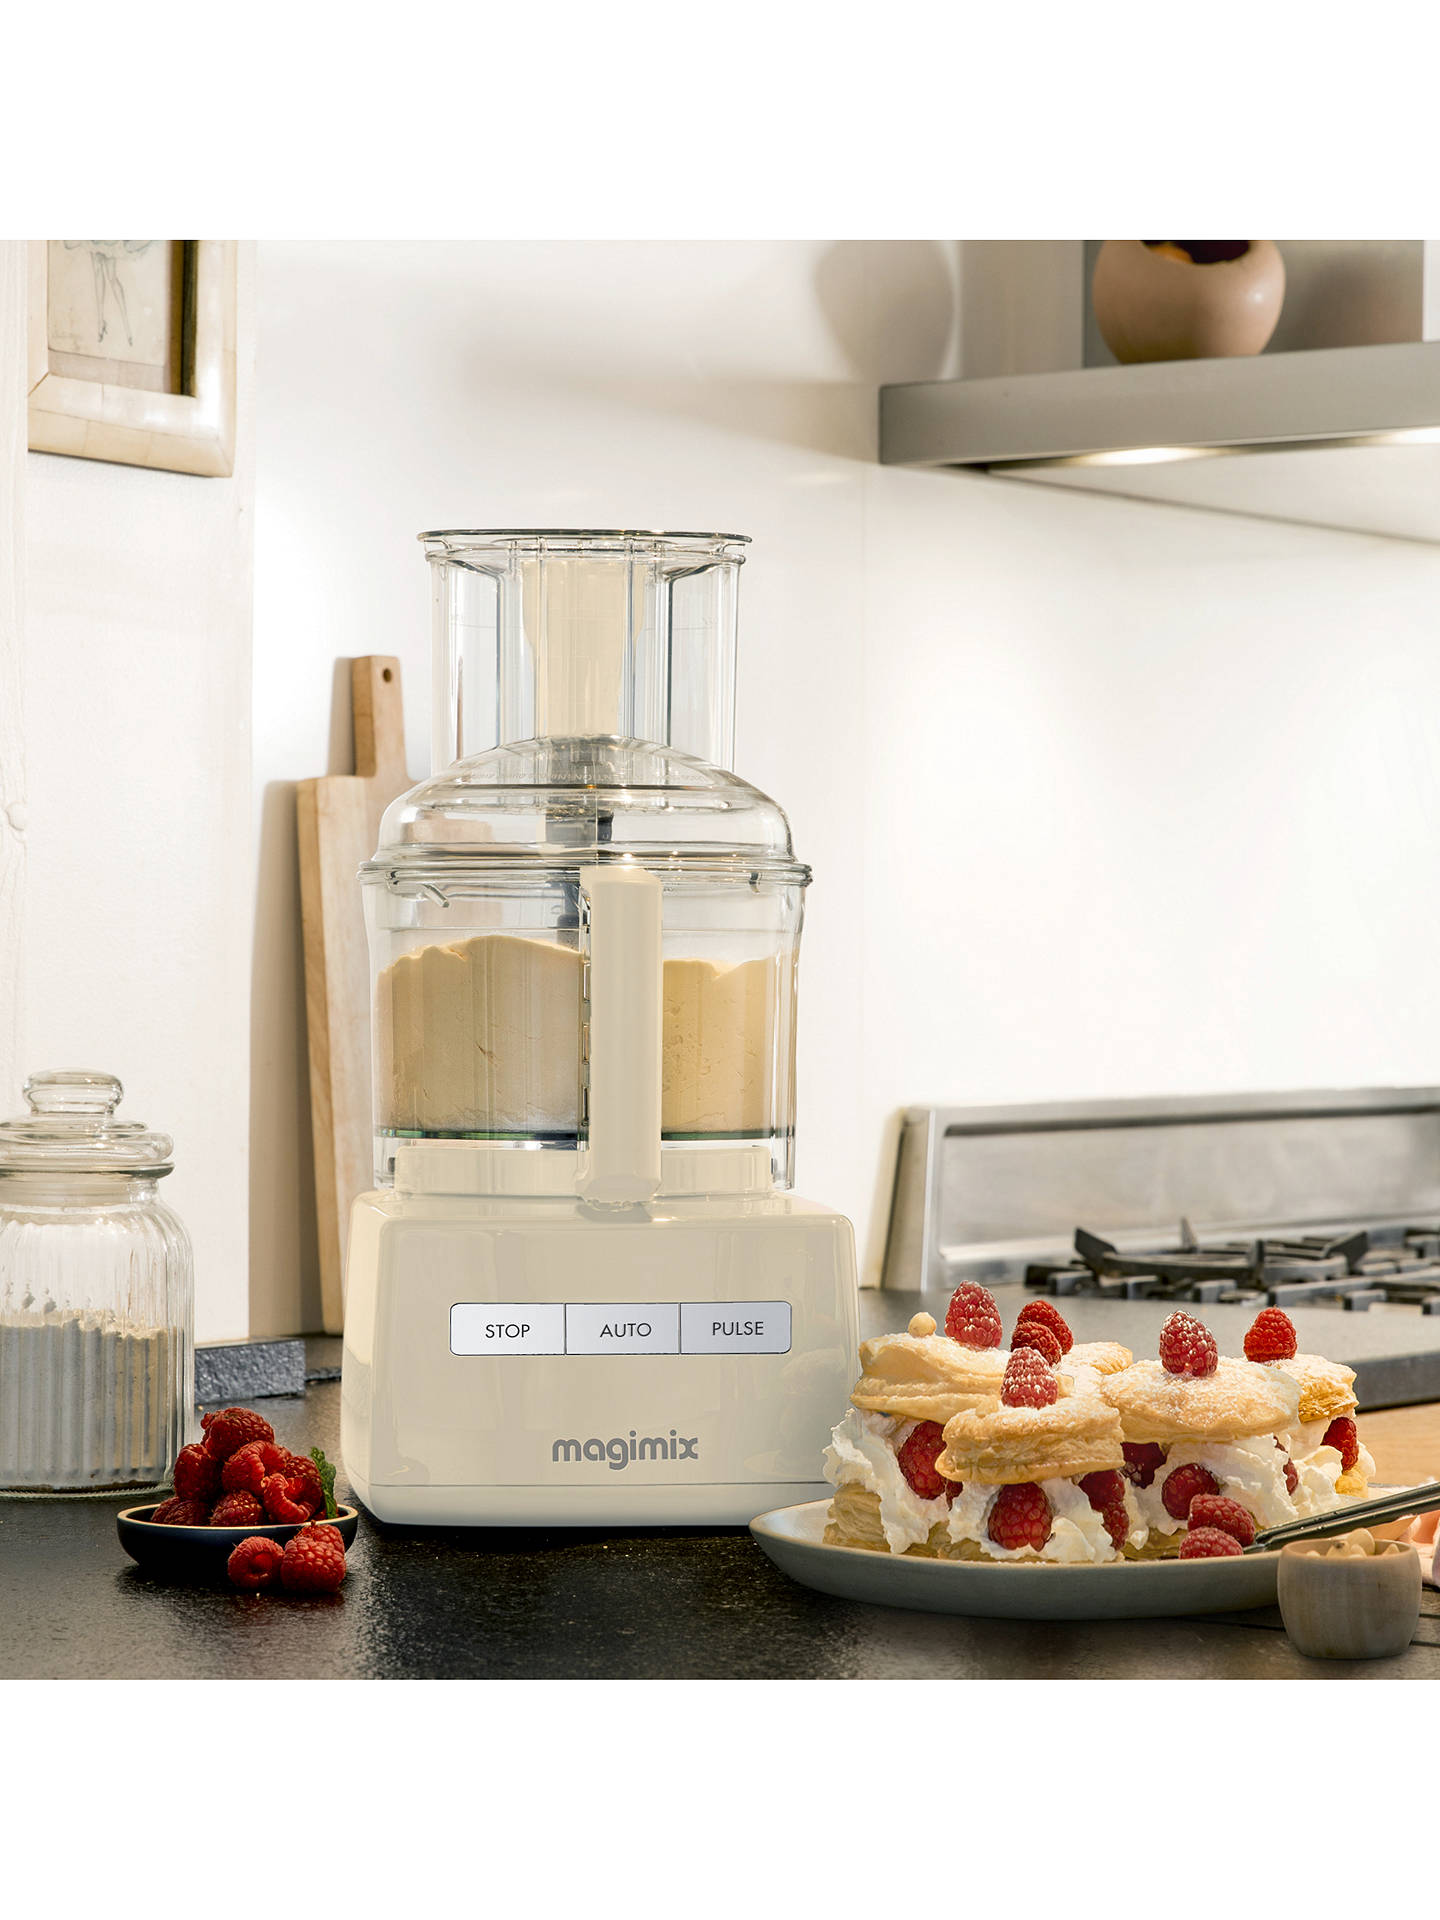 BuyMagimix 5200XL 18583UK BlenderMix Food Processor, Cream Online at johnlewis.com